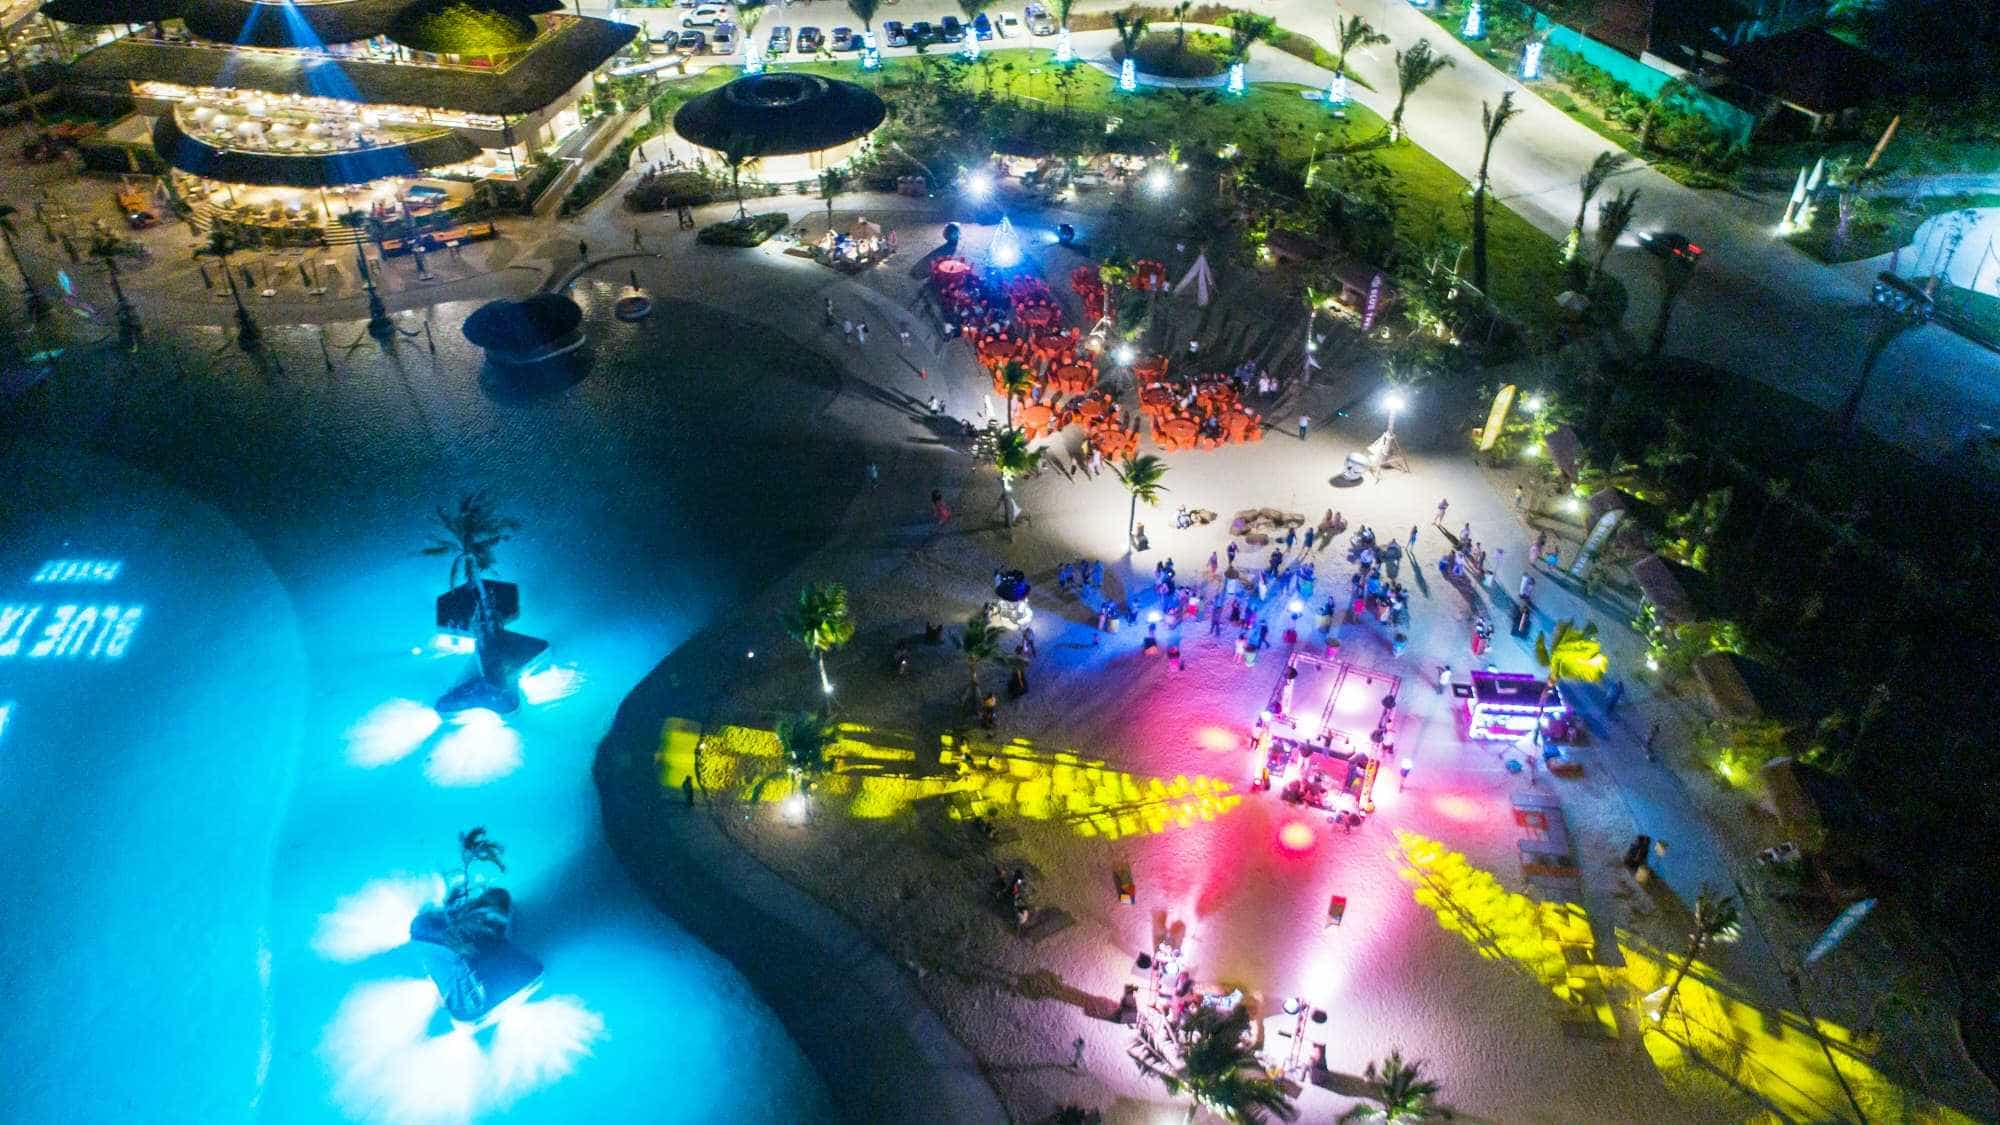 Ariel view of Blue Tree Phuket showing night time lighting design